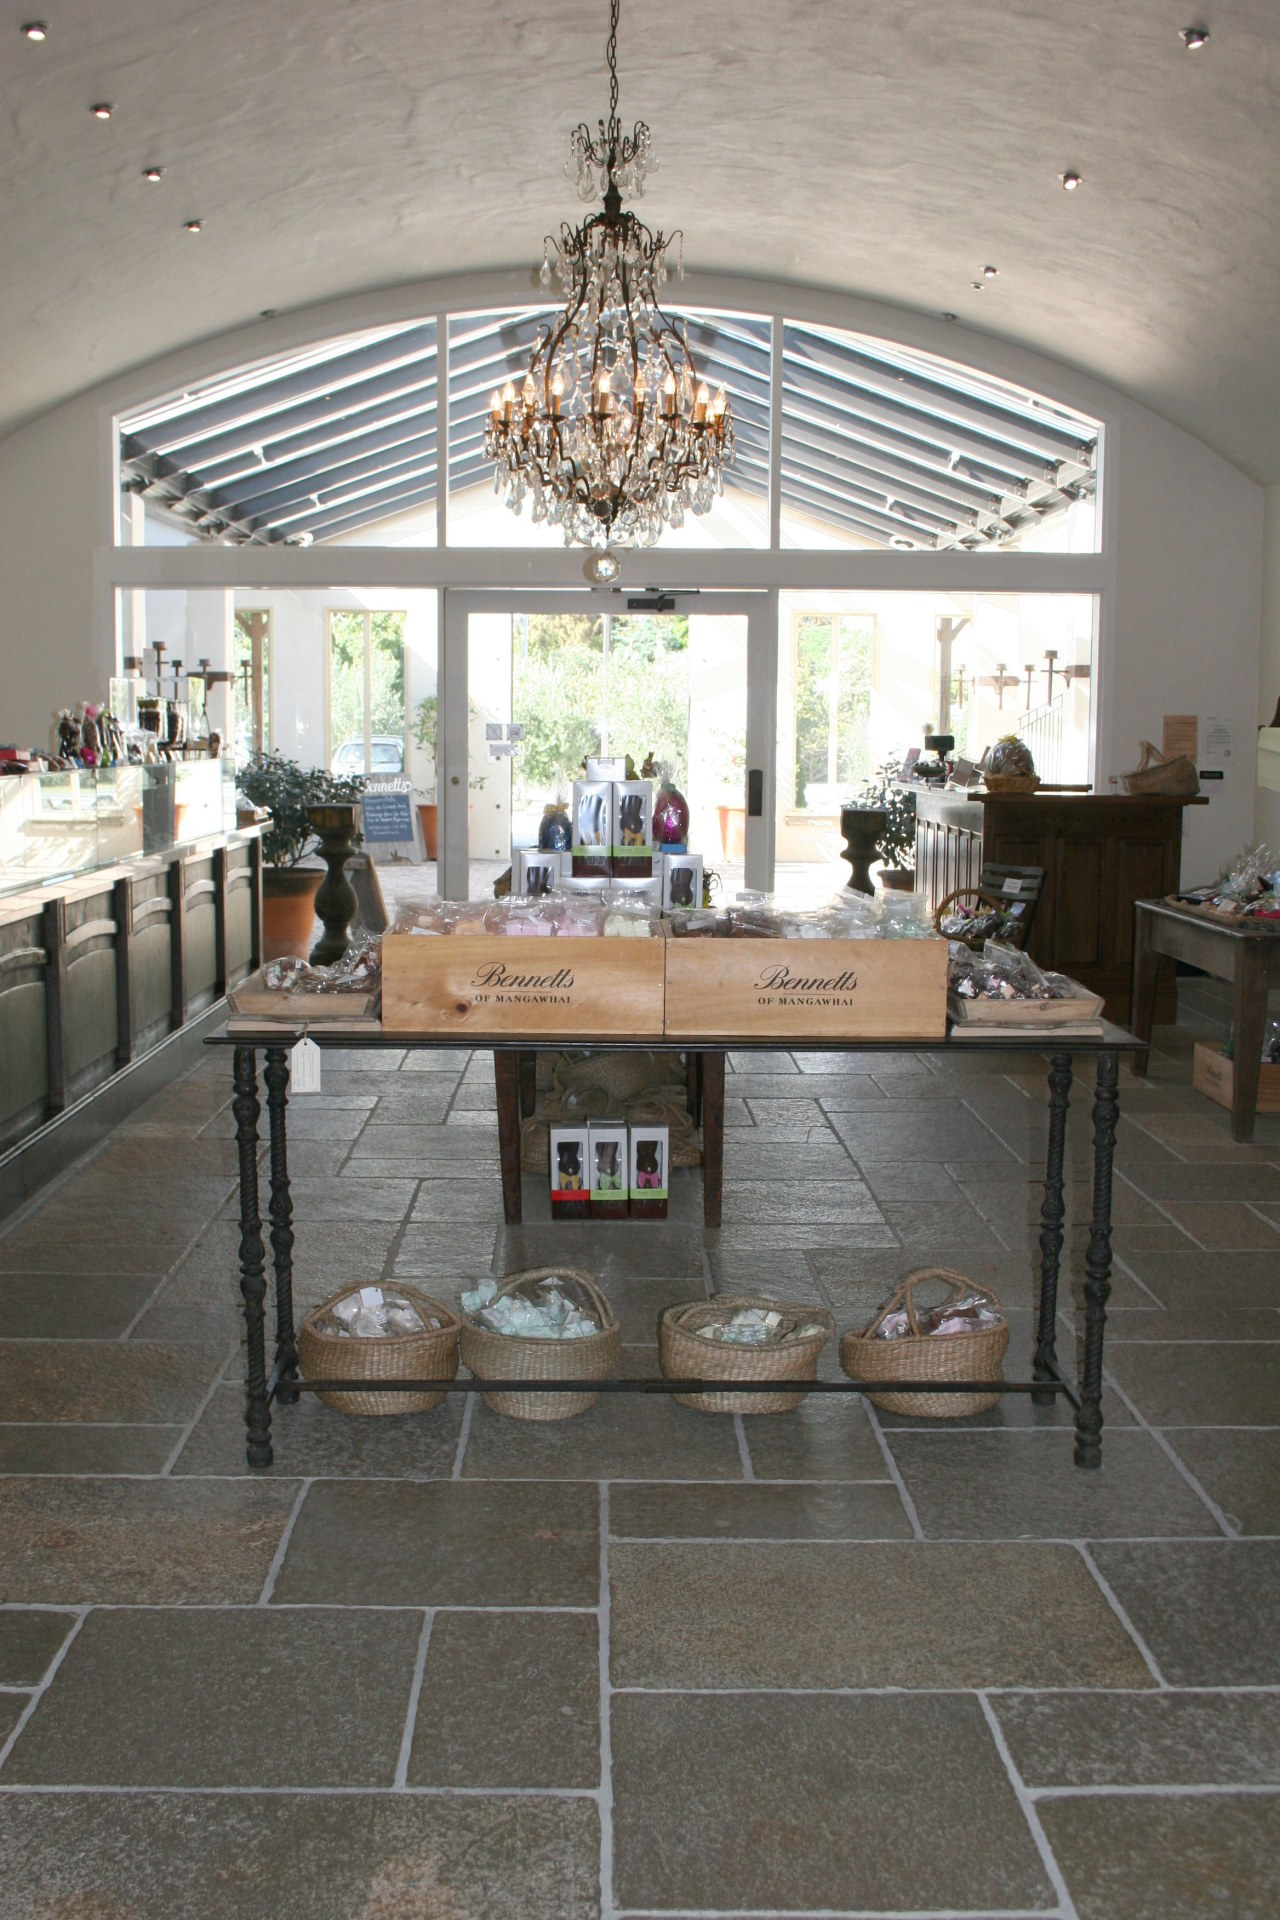 Ethically sourced natural stone products in a variety floor, flooring, furniture, interior design, table, gray